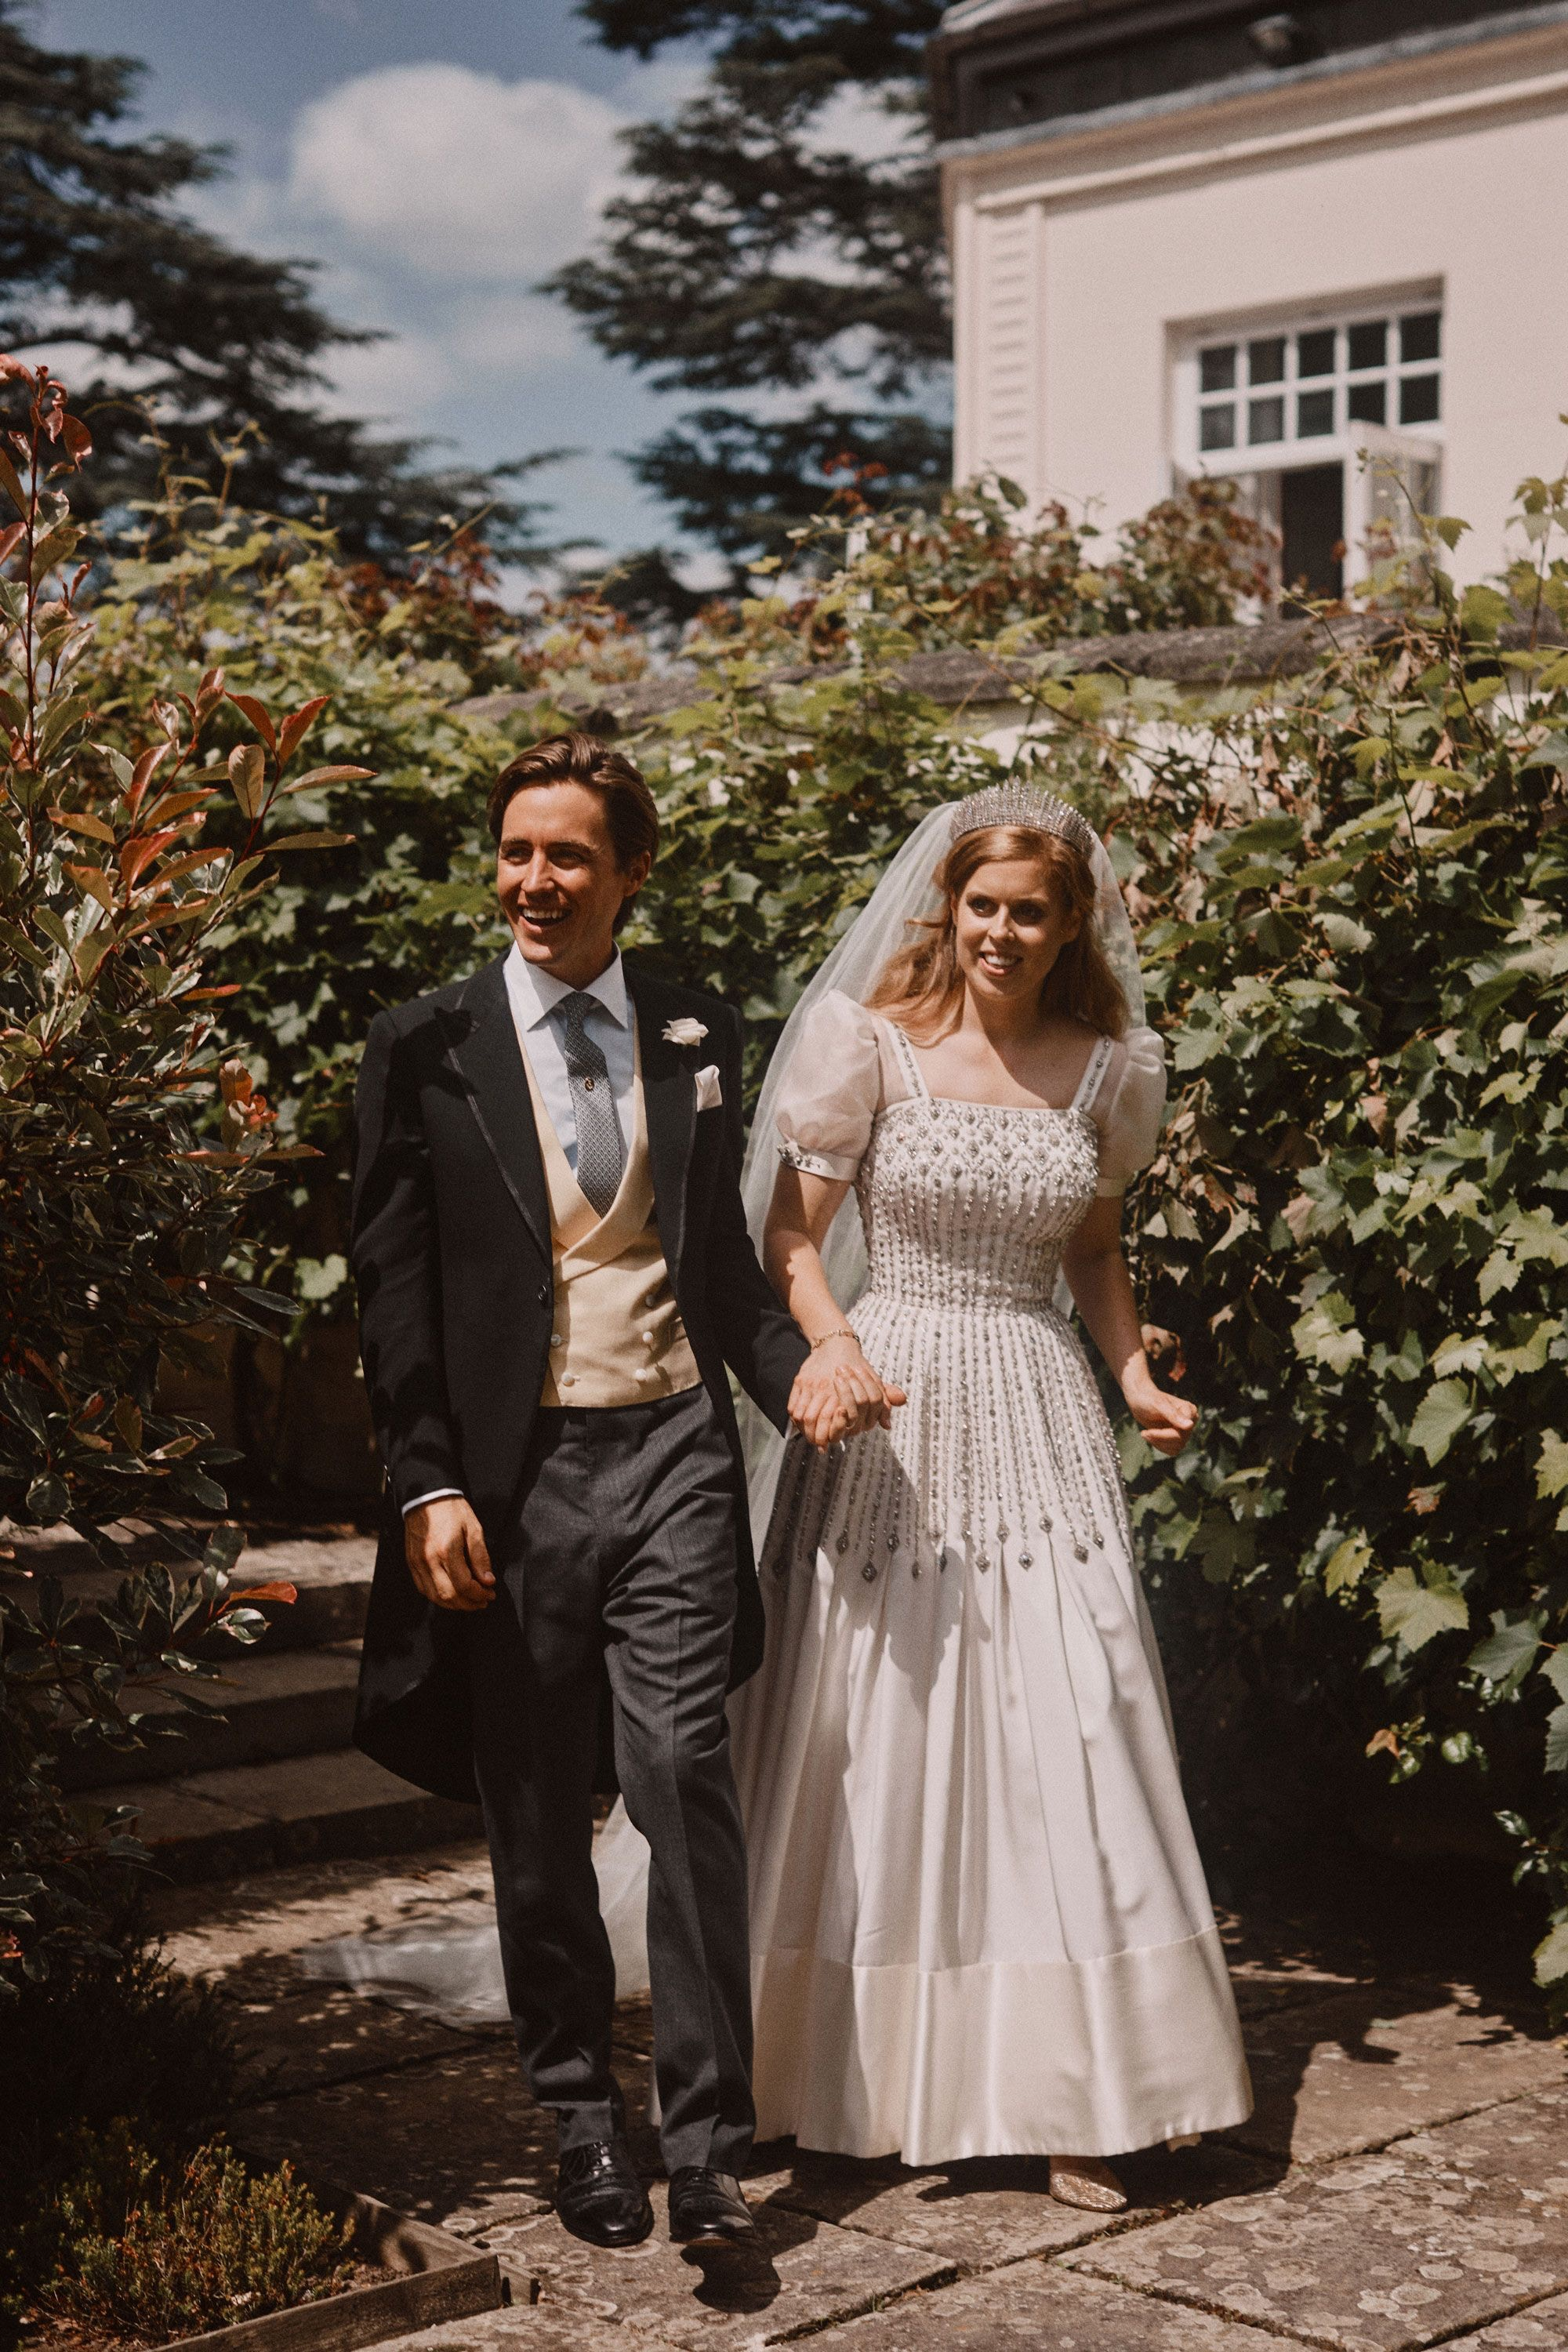 Princess Beatrice and Edoardo Mapelli Mozzi wedding day